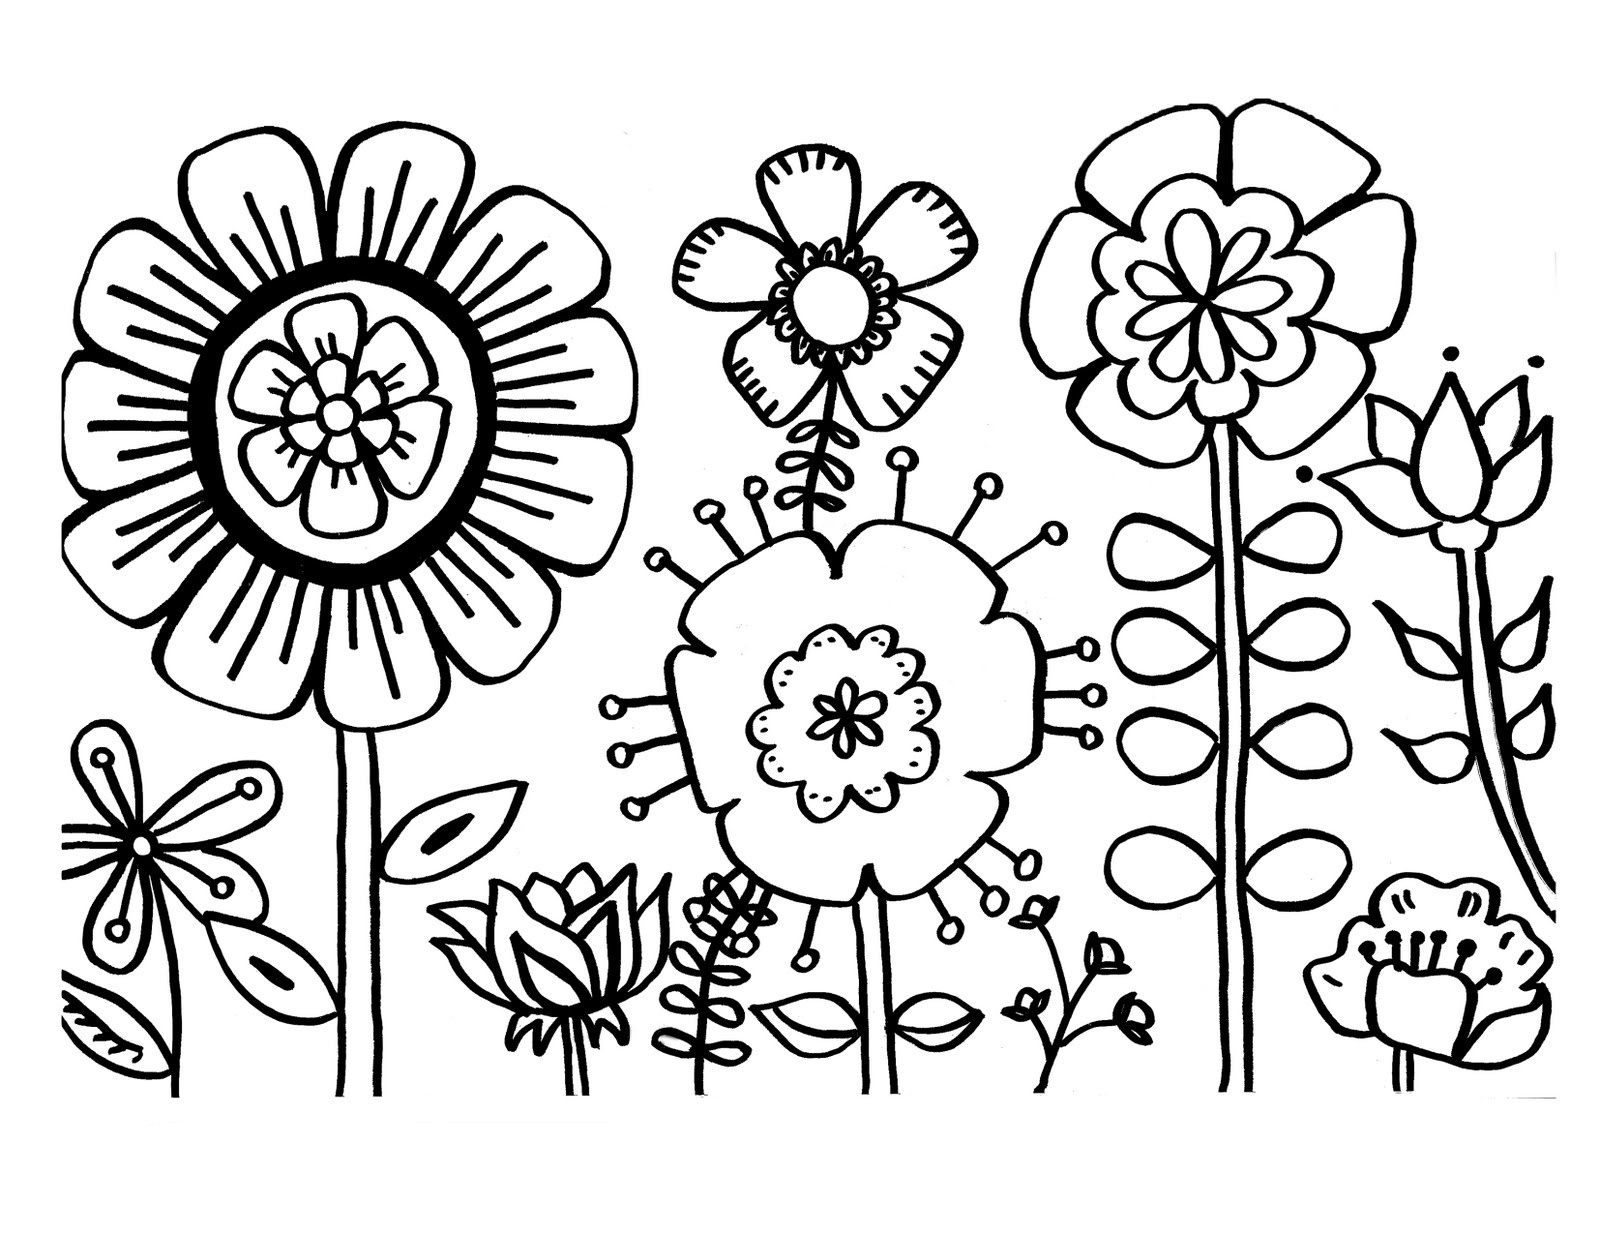 Free Printable Flower Coloring Pages For Kids - Best Coloring Pages - Free Printable Flower Coloring Pages For Adults